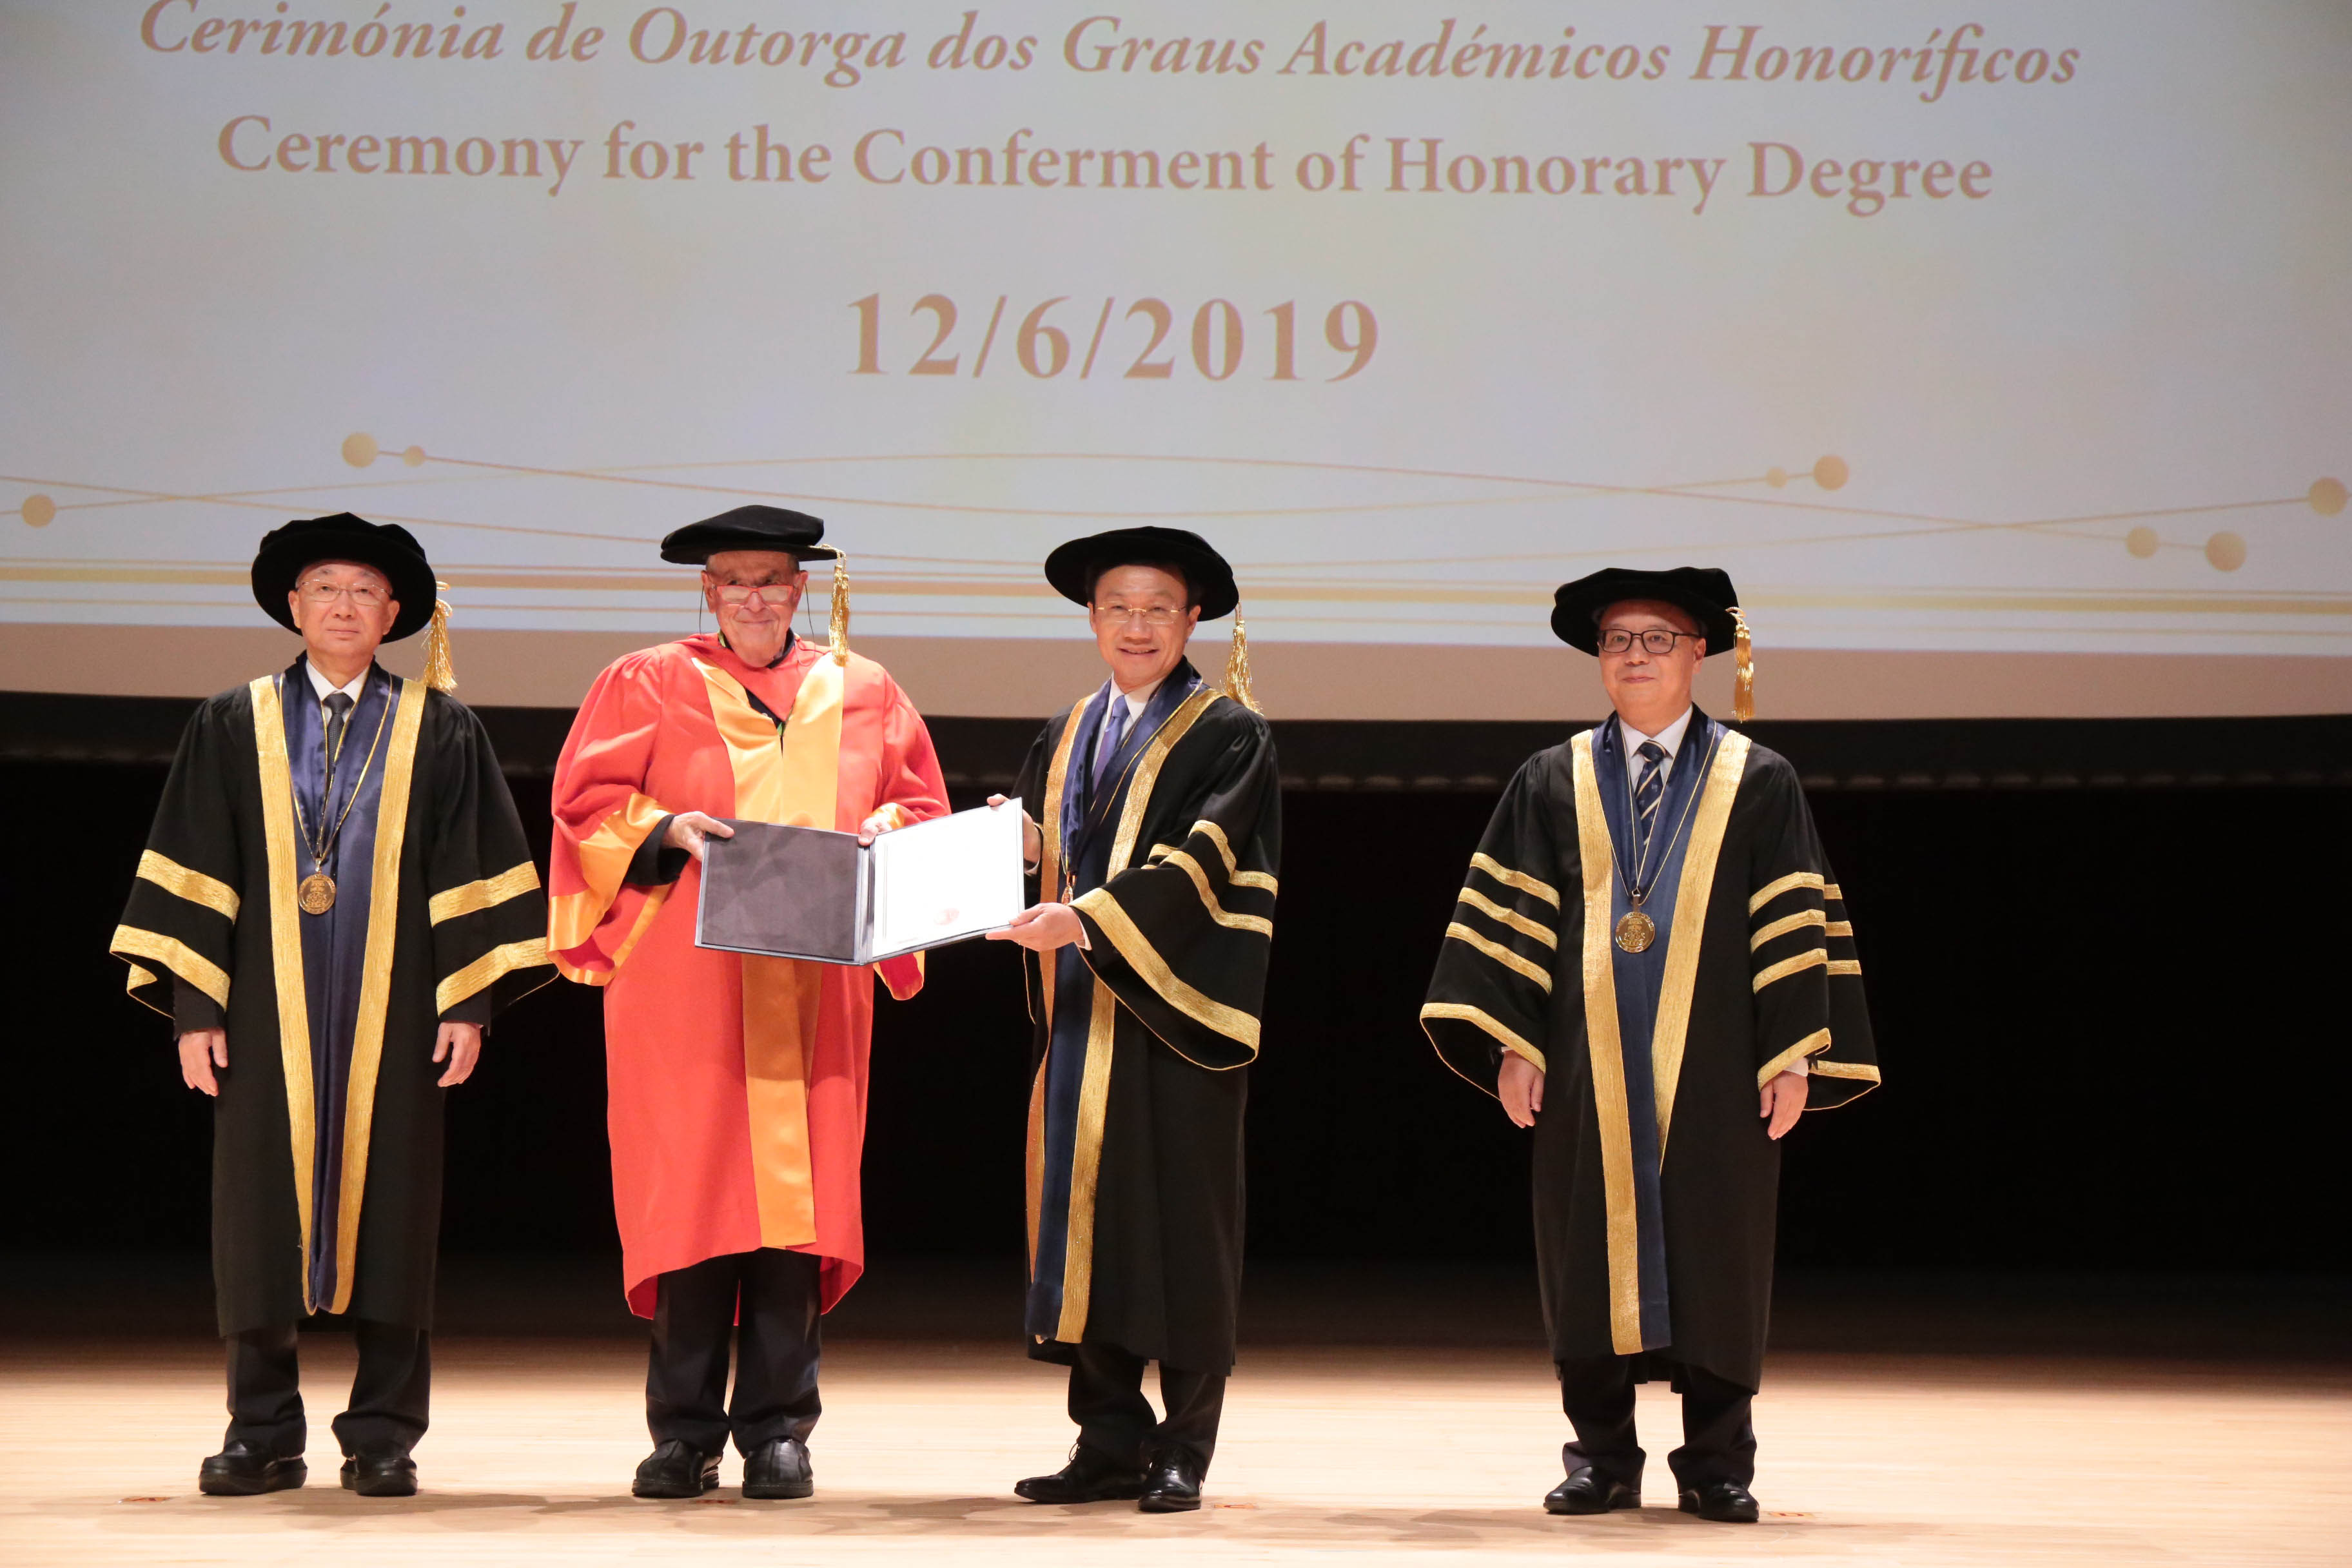 UM confers a honorary doctorate on Prof Aaron Ciechanover